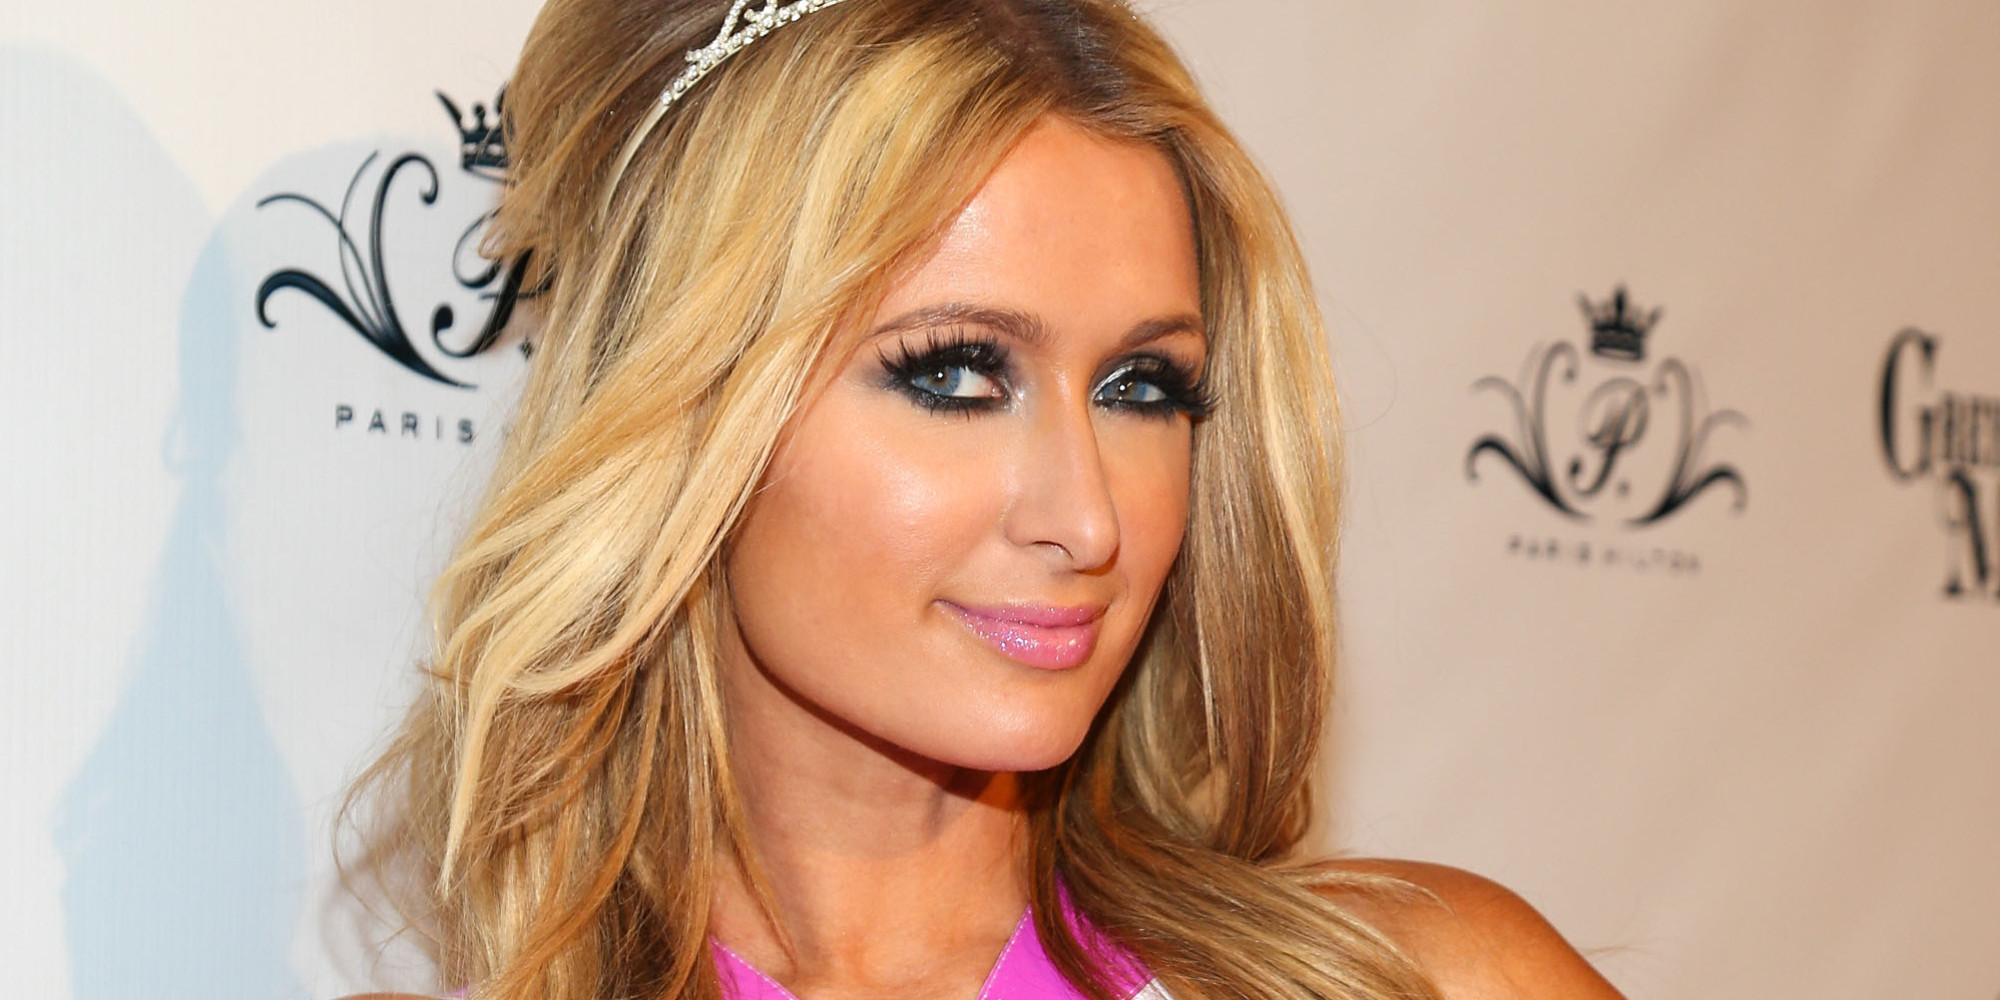 WEST HOLLYWOOD, CA - FEBRUARY 15:  TV personality Paris Hilton attends her birthday party at Greystone Manor Supperclub on February 15, 2014 in West Hollywood, California.  (Photo by Imeh Akpanudosen/Getty Images)